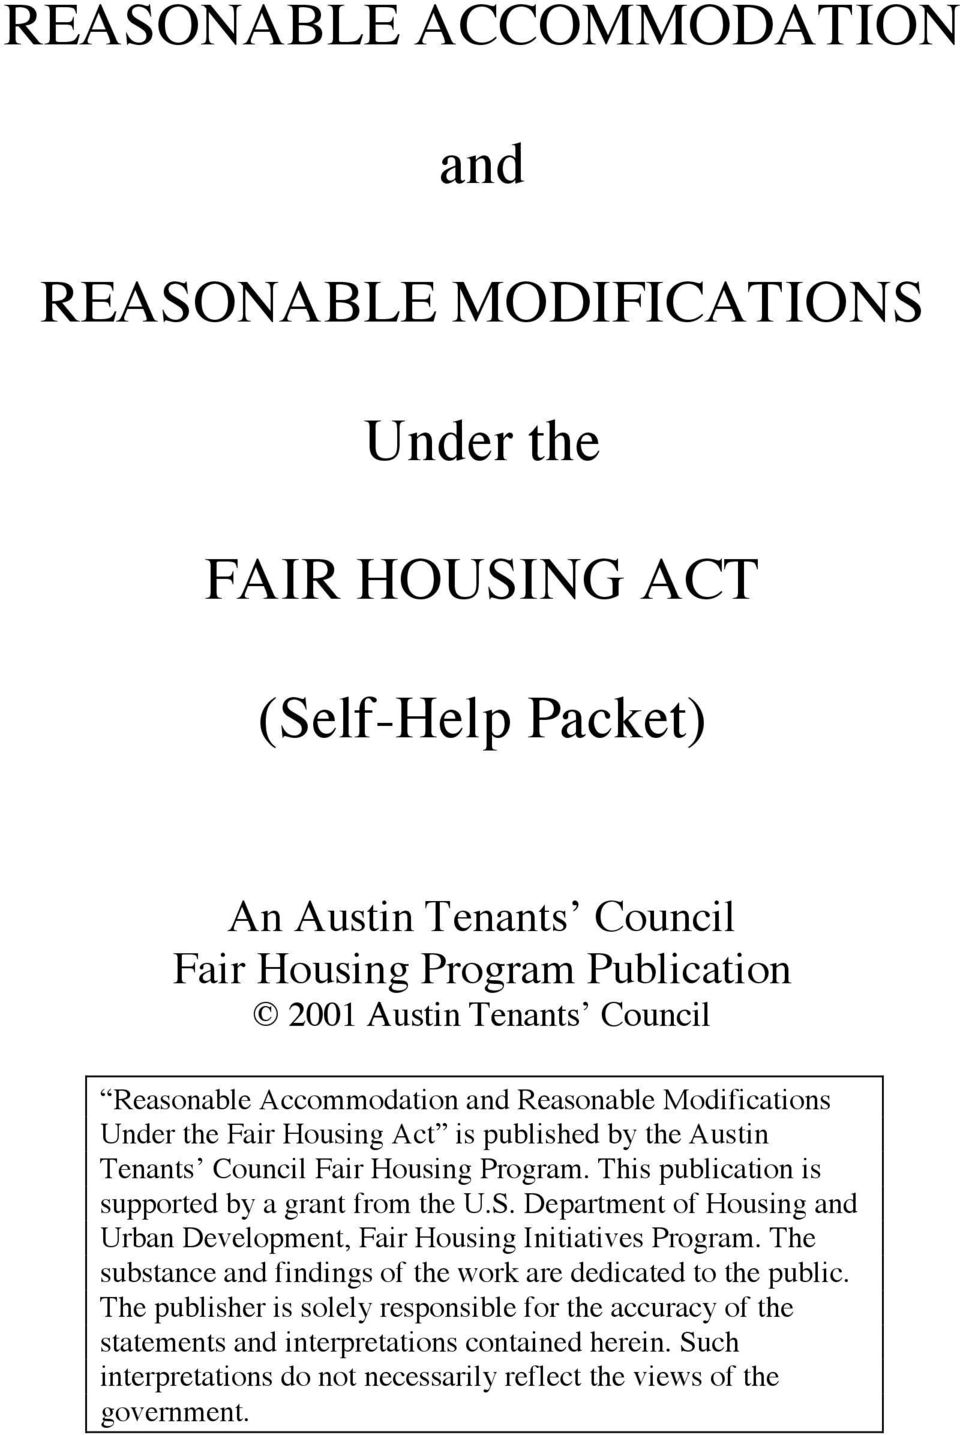 This publication is supported by a grant from the U.S. Department of Housing and Urban Development, Fair Housing Initiatives Program.